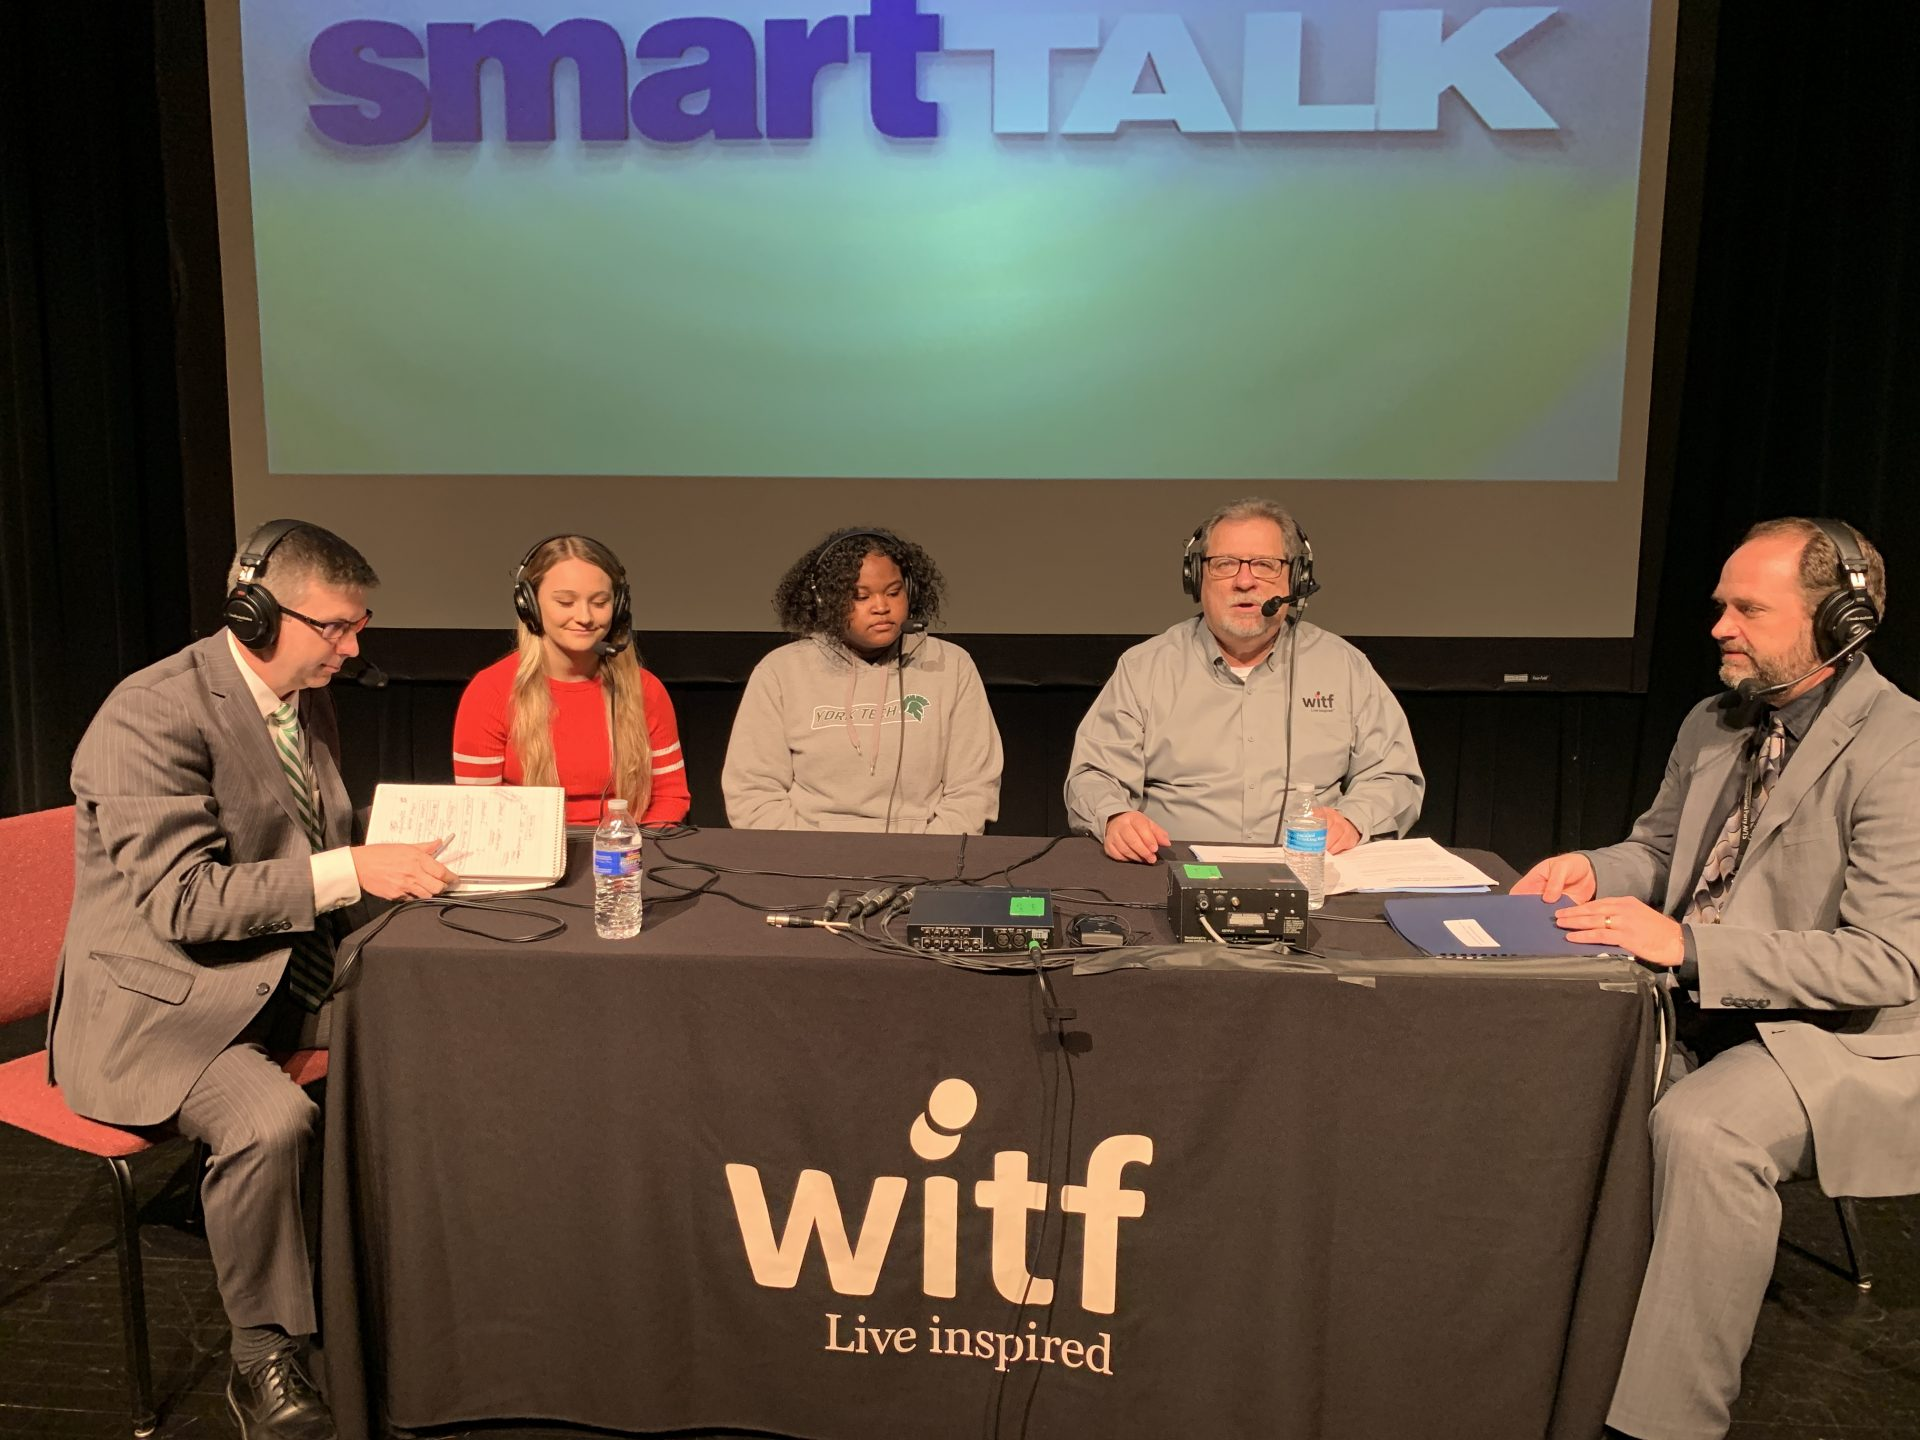 Scott Rogers, assistant director of the York County School of Technology; students Kasey Davis, a senior in the dental assisting program at Cumberland Perry AVTS, and Nadia Stuckey, a senior in the engineering and advanced manufacturing program at York County School of Technology; and Justin Bruhn, director of Cumberland Perry AVTS, share their perspectives.